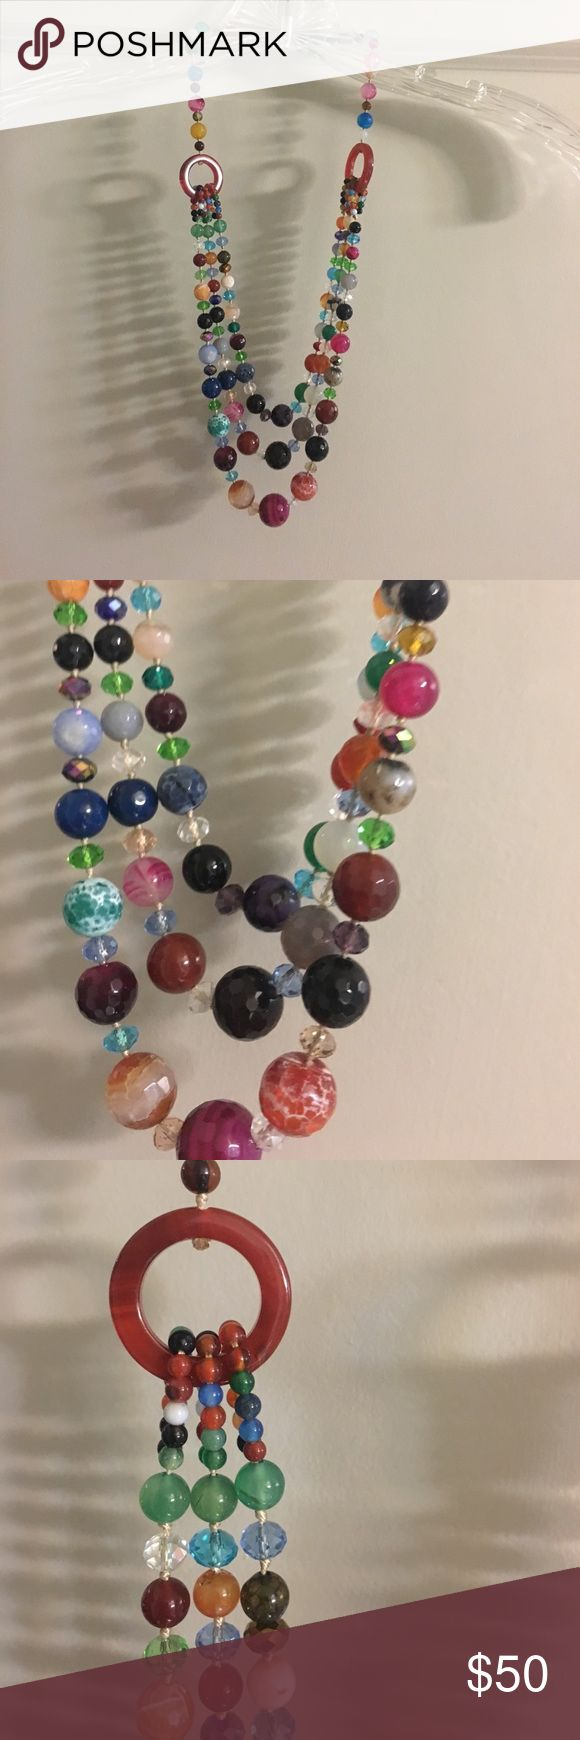 Anthropologie triple strand beaded necklace Beautifully crafted jewel-tone necklace. In great condition. Very well-made. Feel free to ask me questions! Anthropologie Jewelry Necklaces